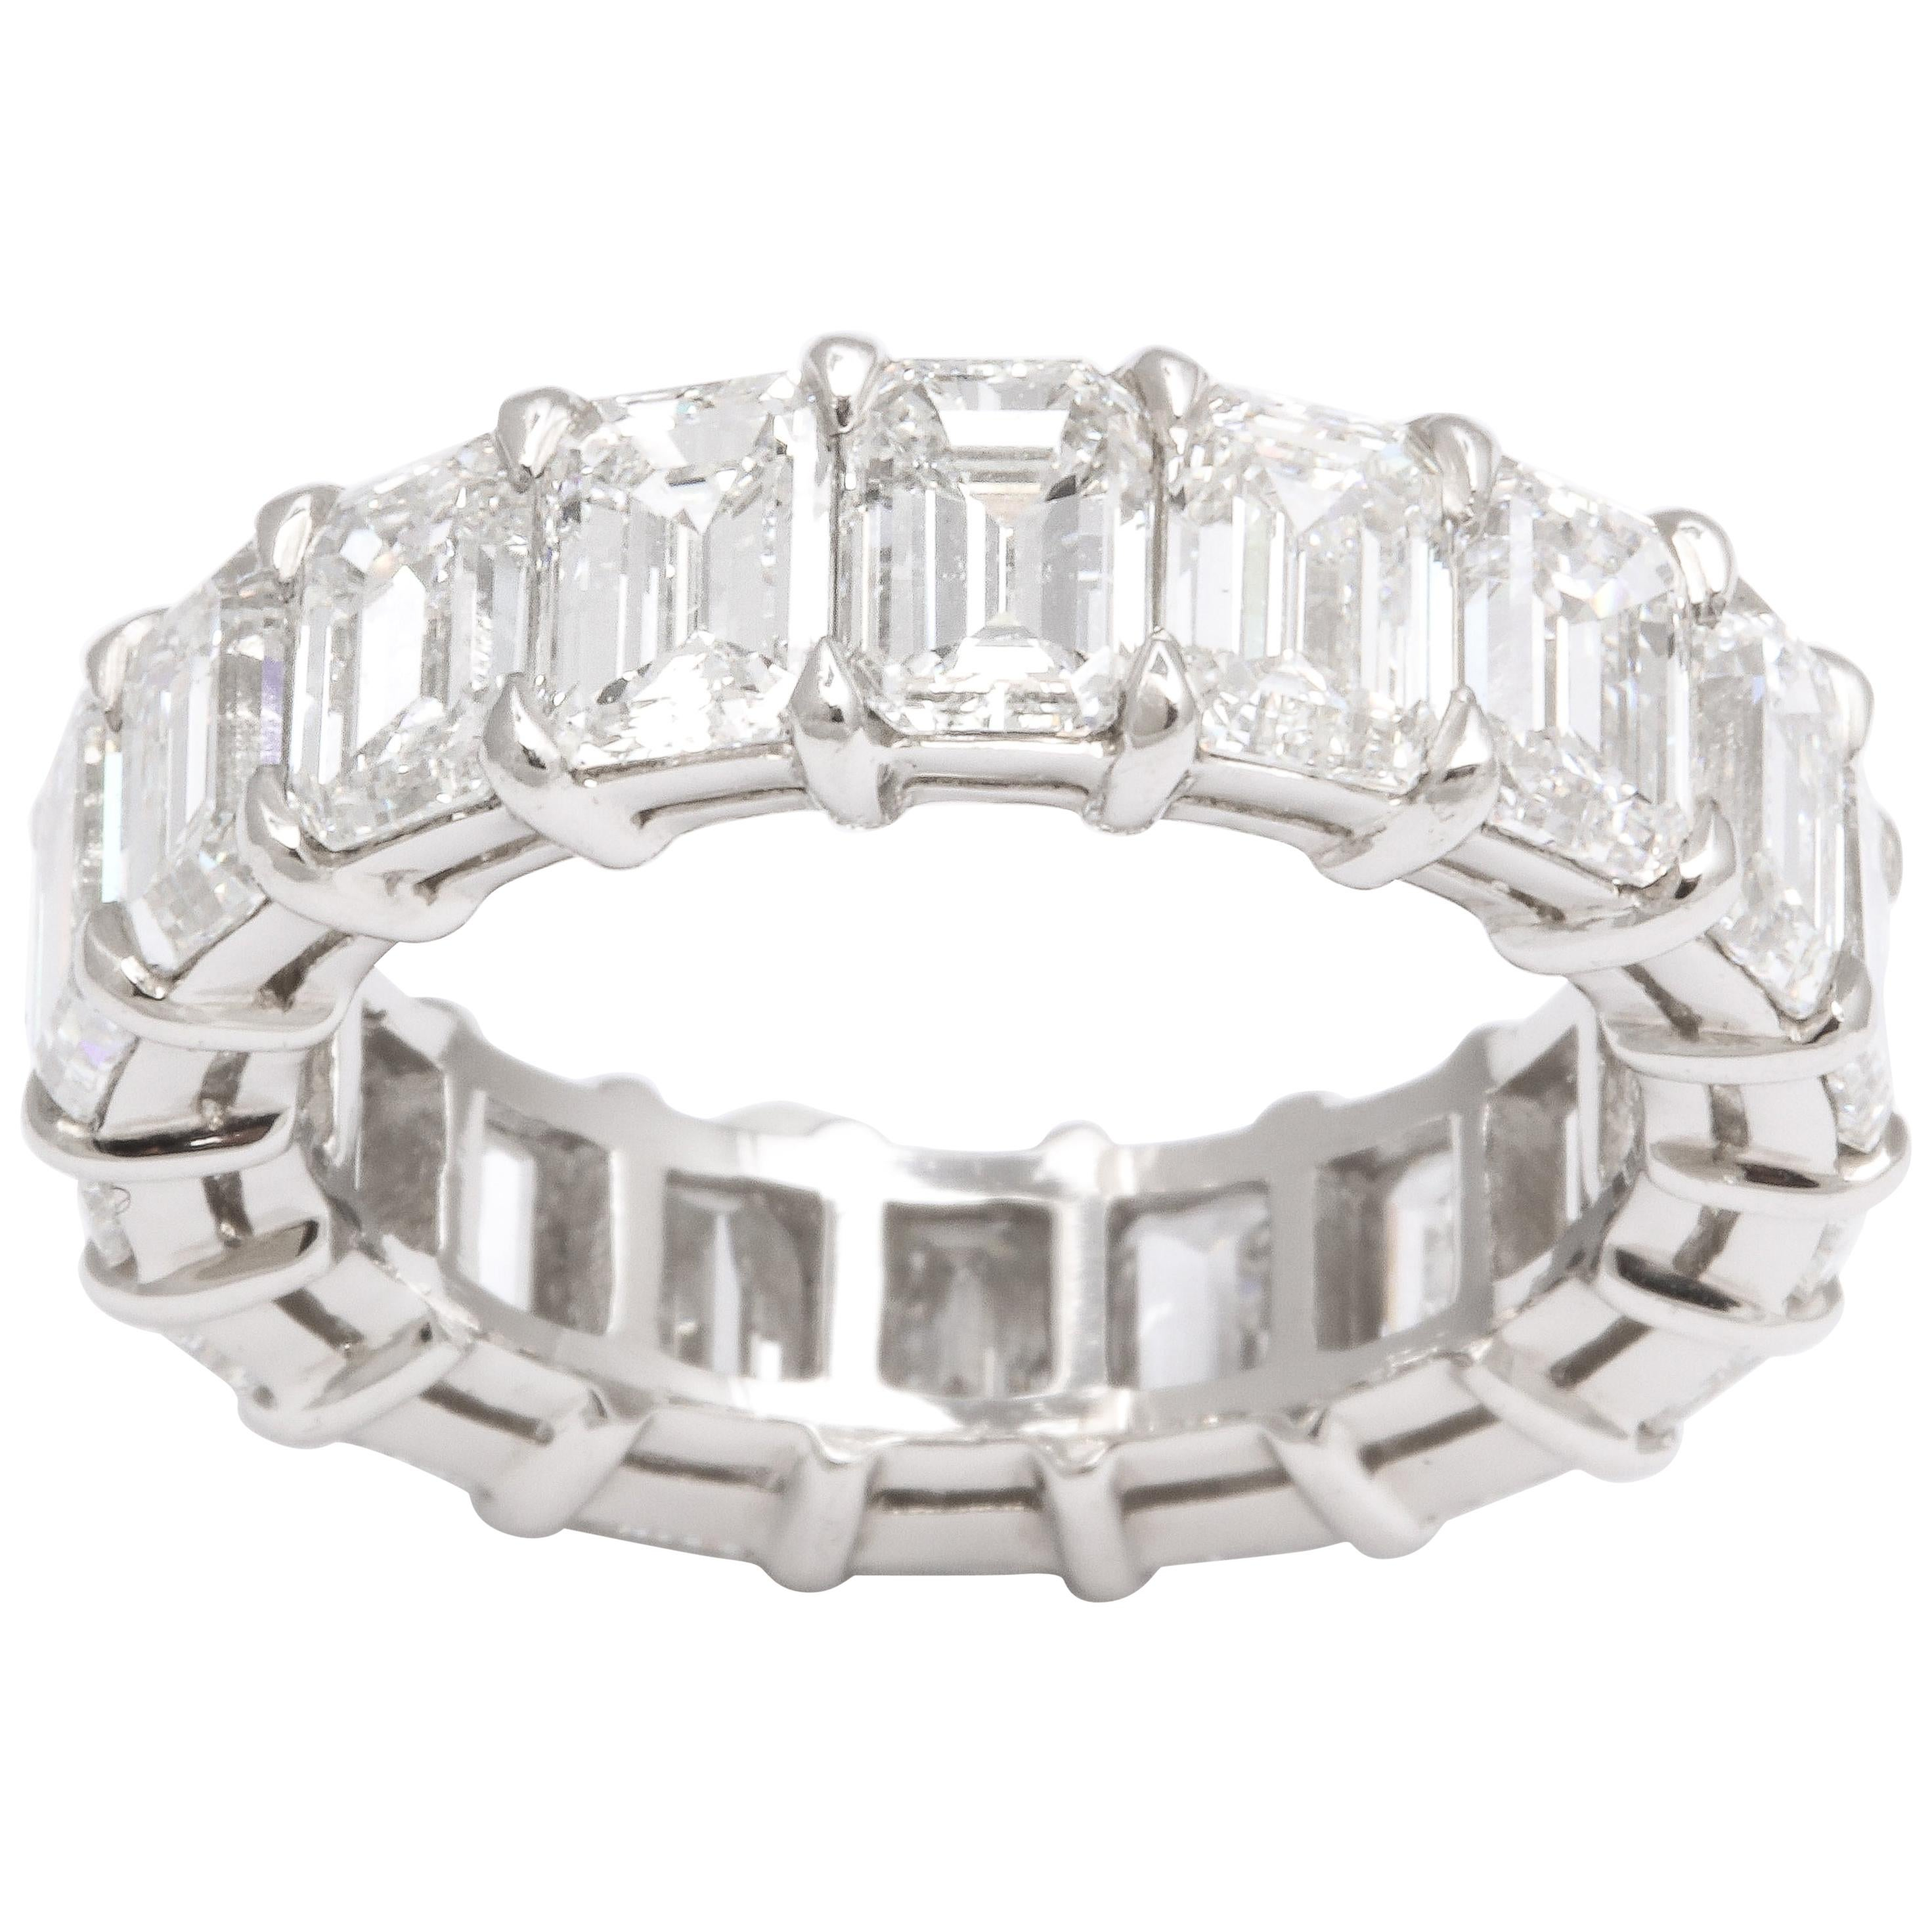 9 Carat Emerald Cut Diamond Eternity Band